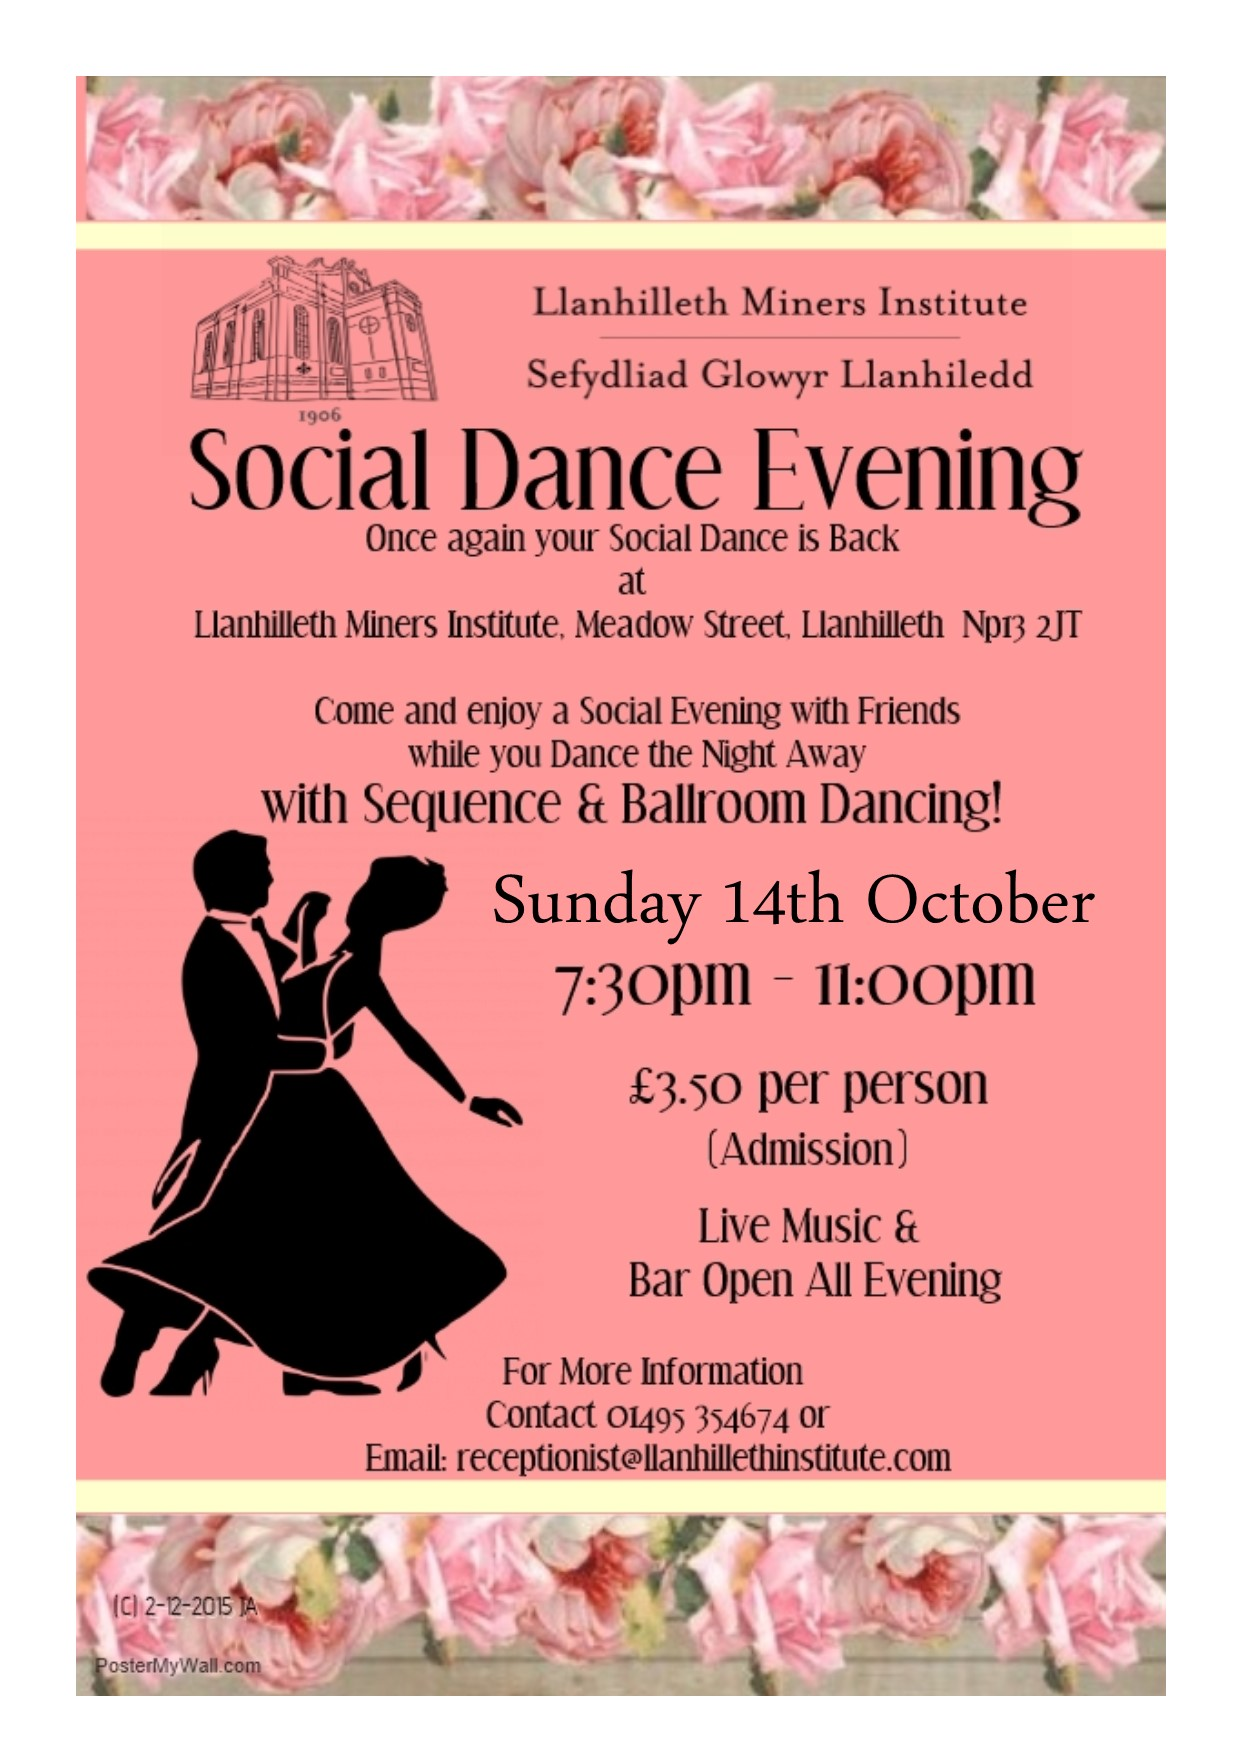 Monthly Social Dance Evening